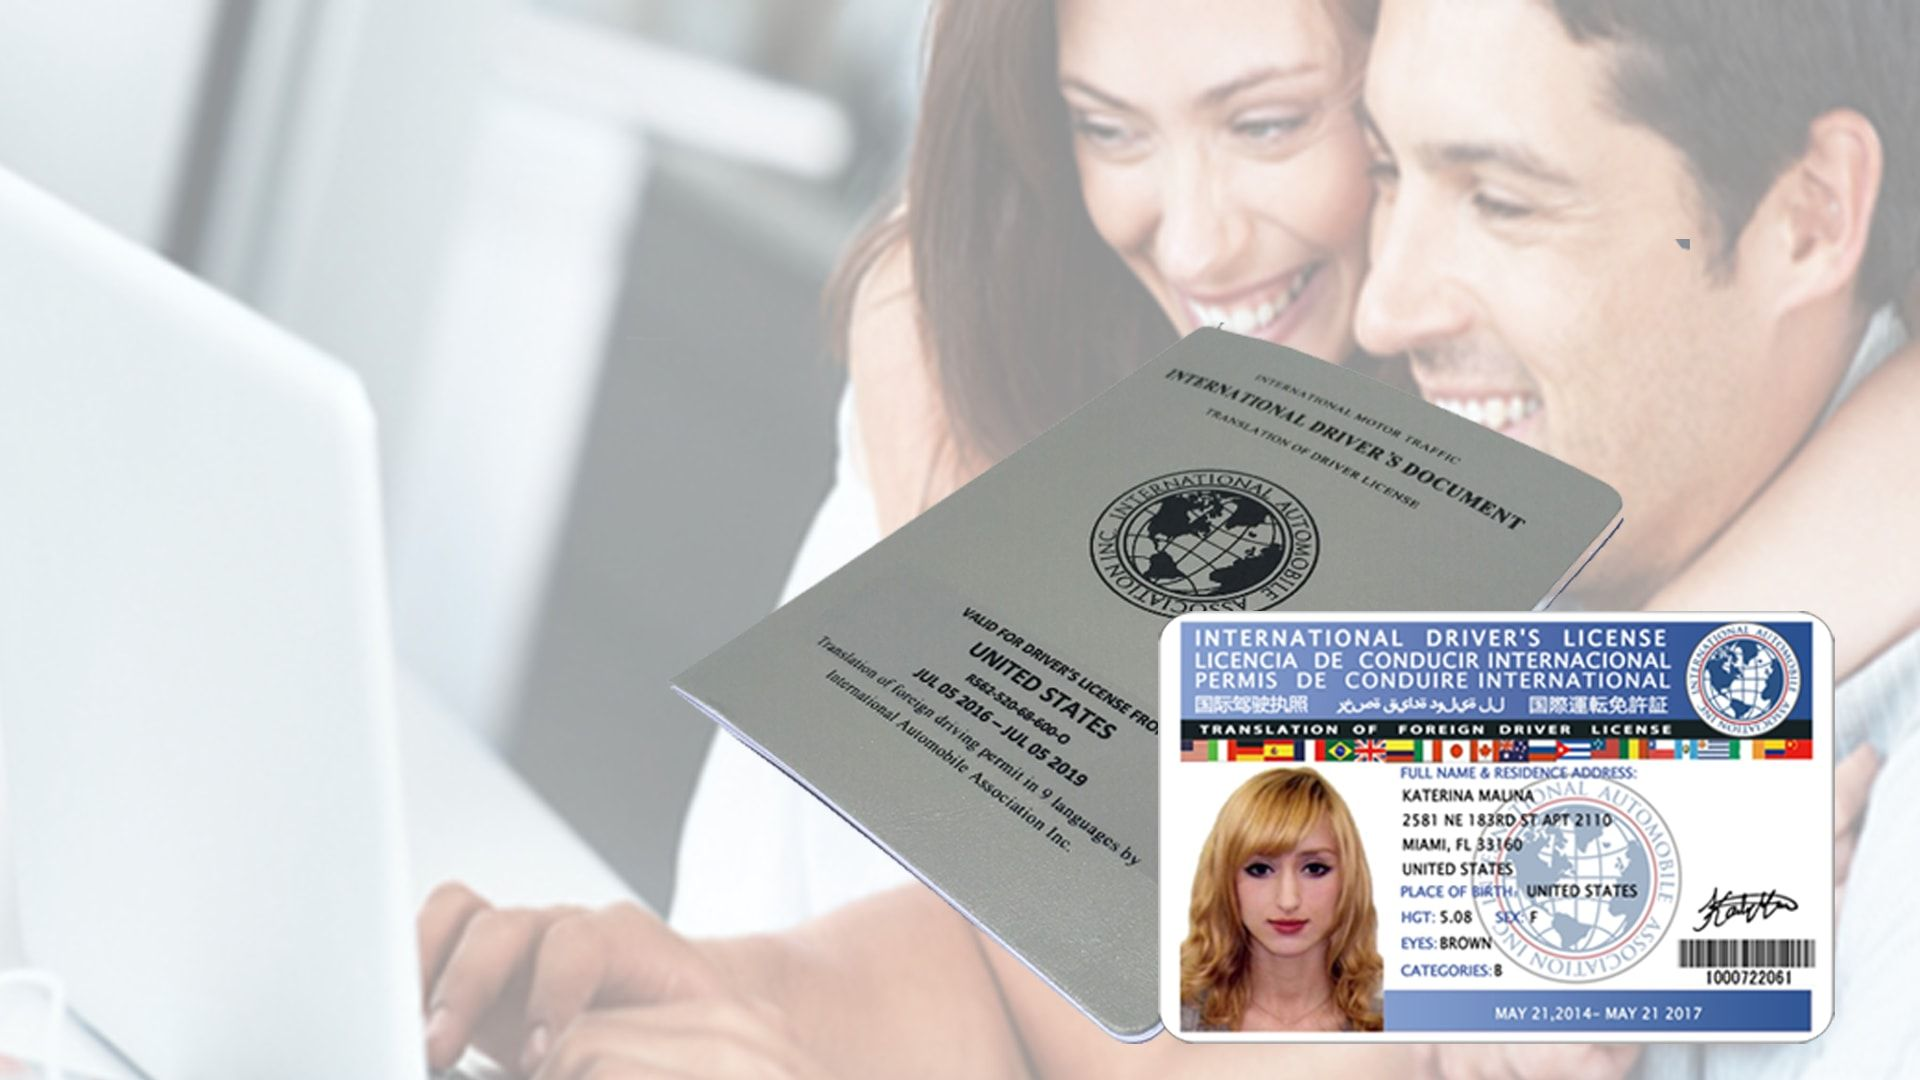 Apply online international driver license with multiple languages apply online international driver license with multiple languages including are english arabic russian publicscrutiny Gallery